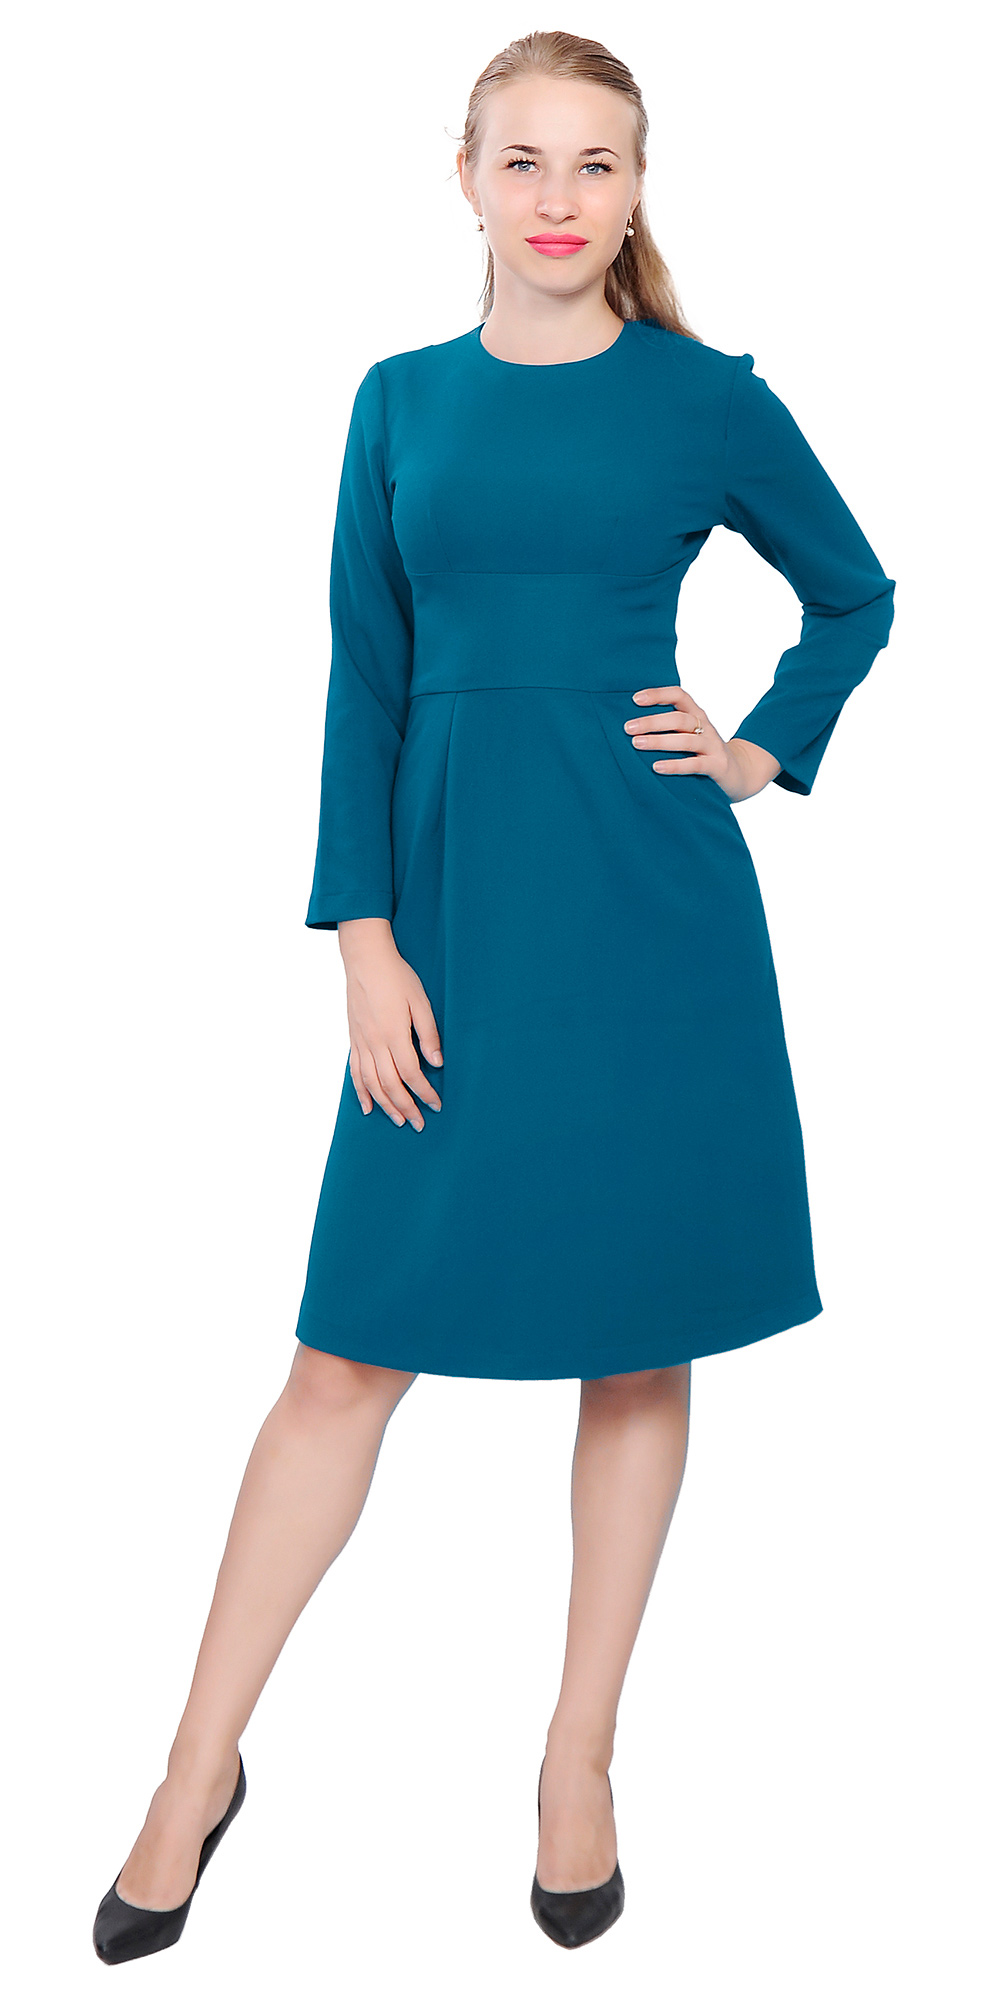 Luxury Blue Work Dress Office Attire Knee Length Short Sleeves Sexy Elegant Versatile Cocktail Day To ...